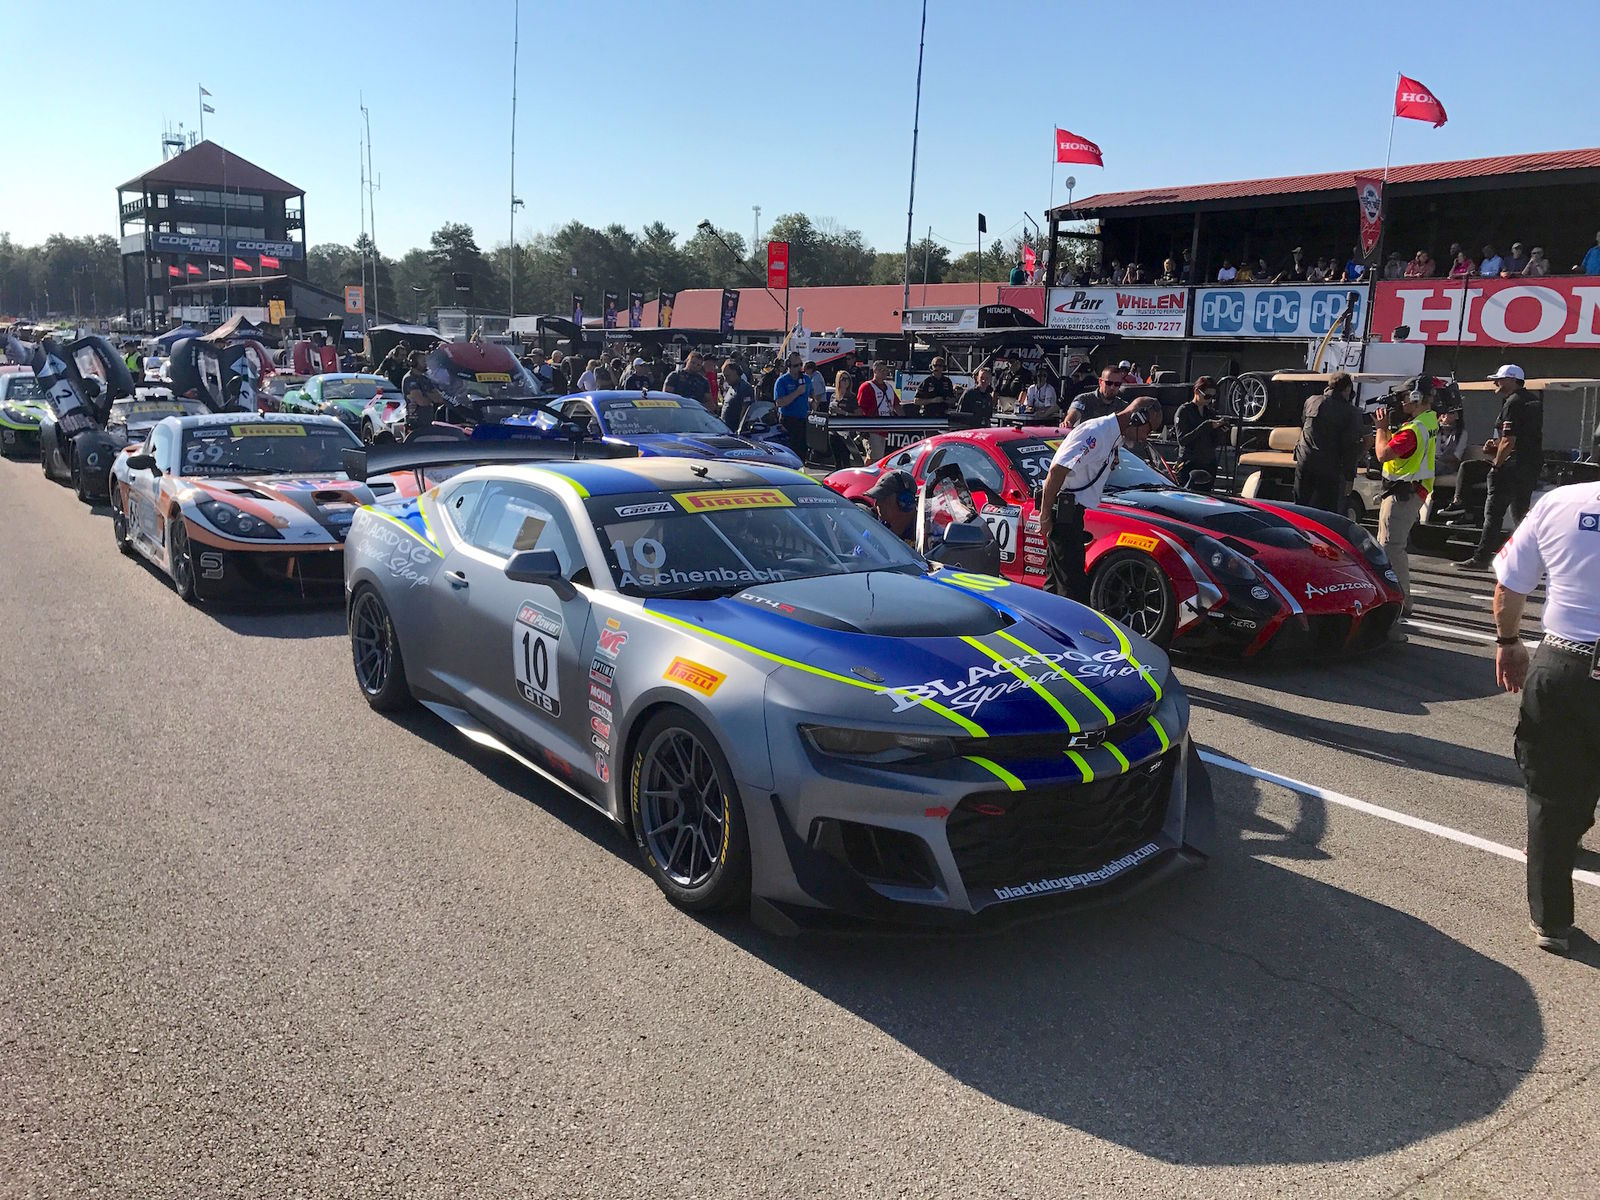 2017 Chevrolet Camaro | Forgeline Teams Top the Pirelli World Challenge Podium at Mid-Ohio